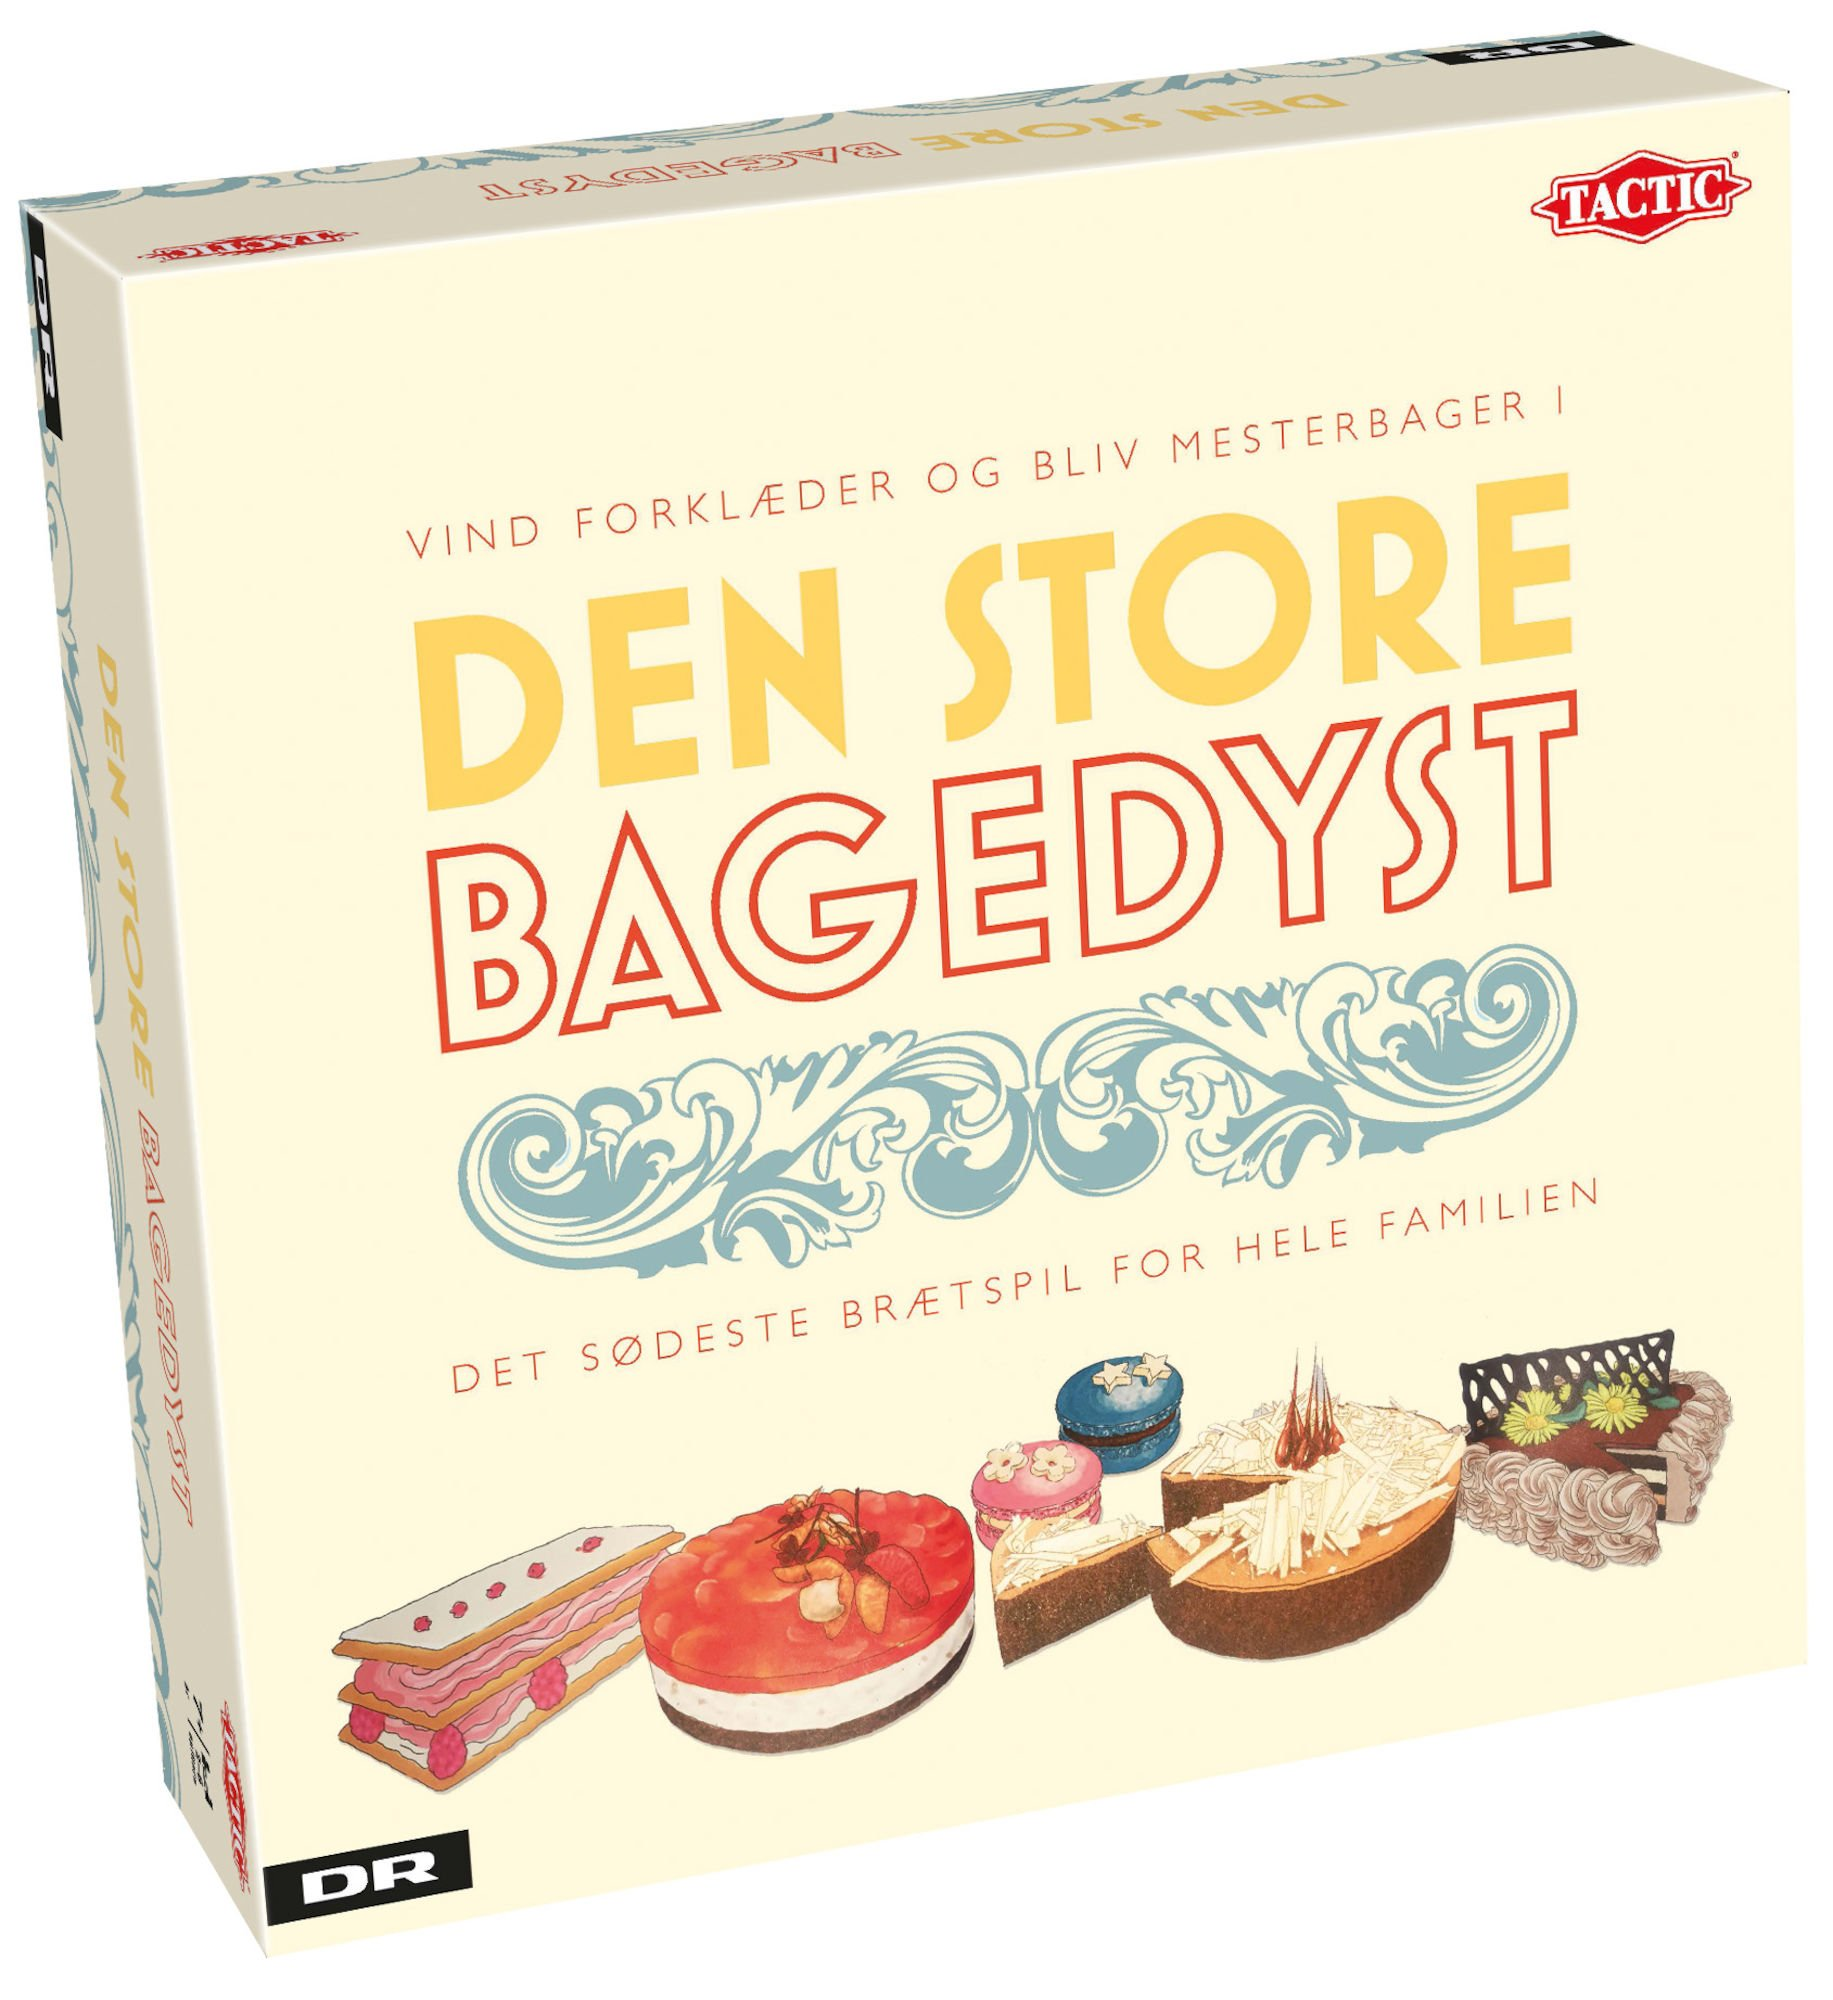 Tactic Den store bagedyst